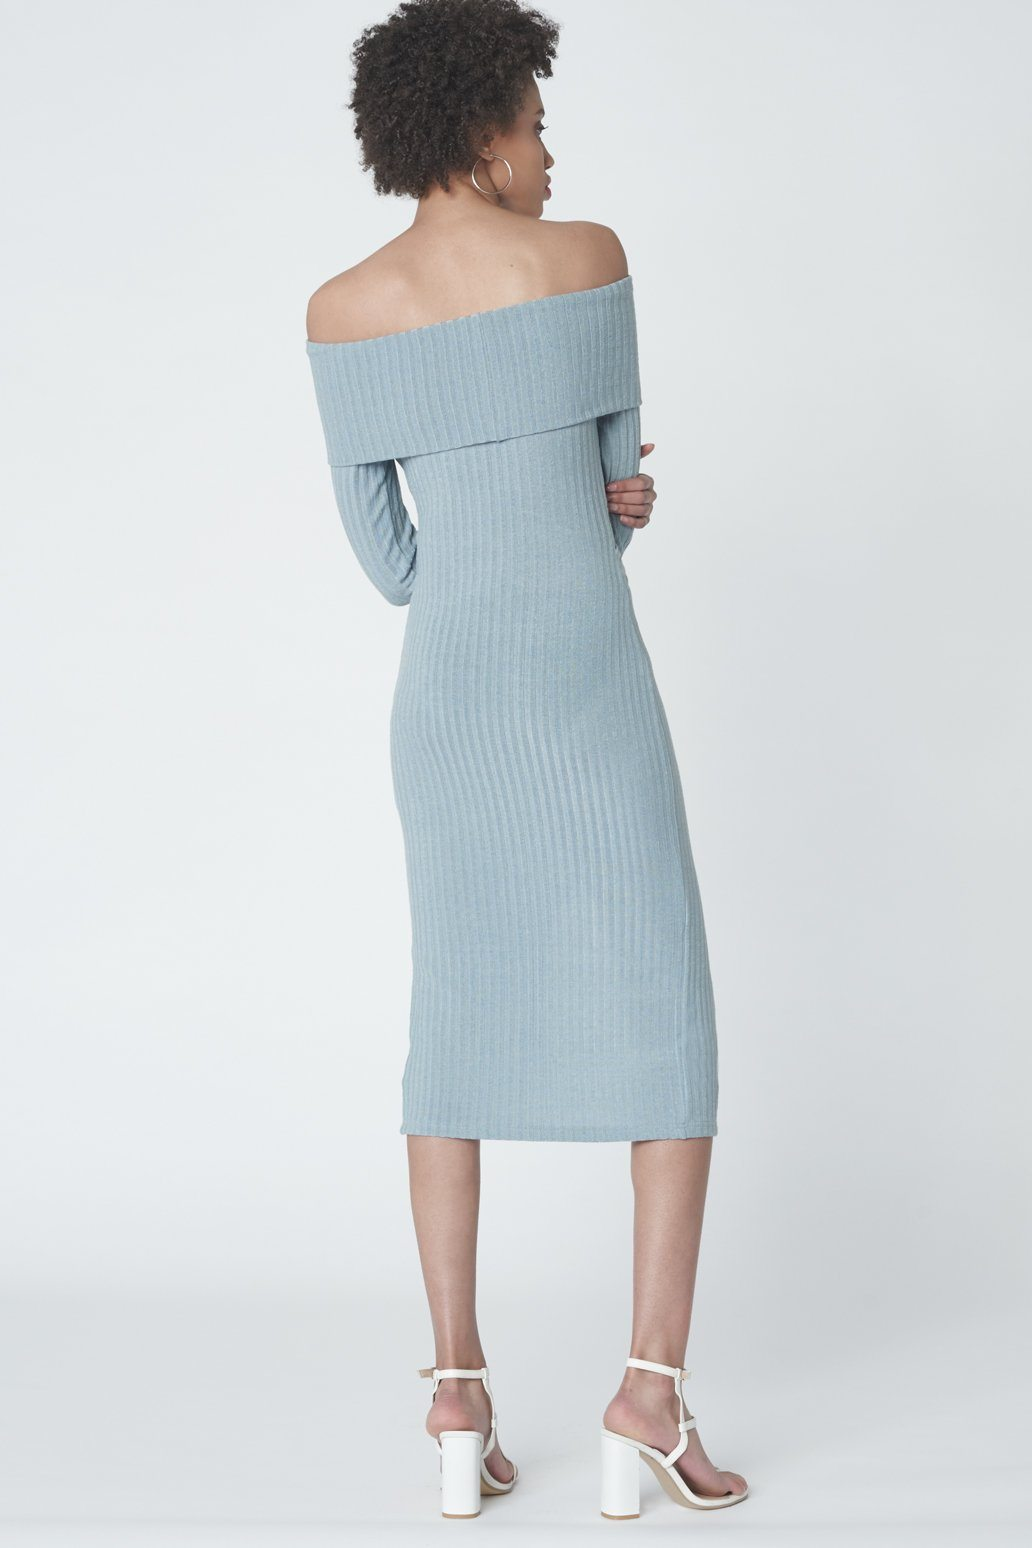 Criss Cross Strapless Dress in Powder Blue Knit